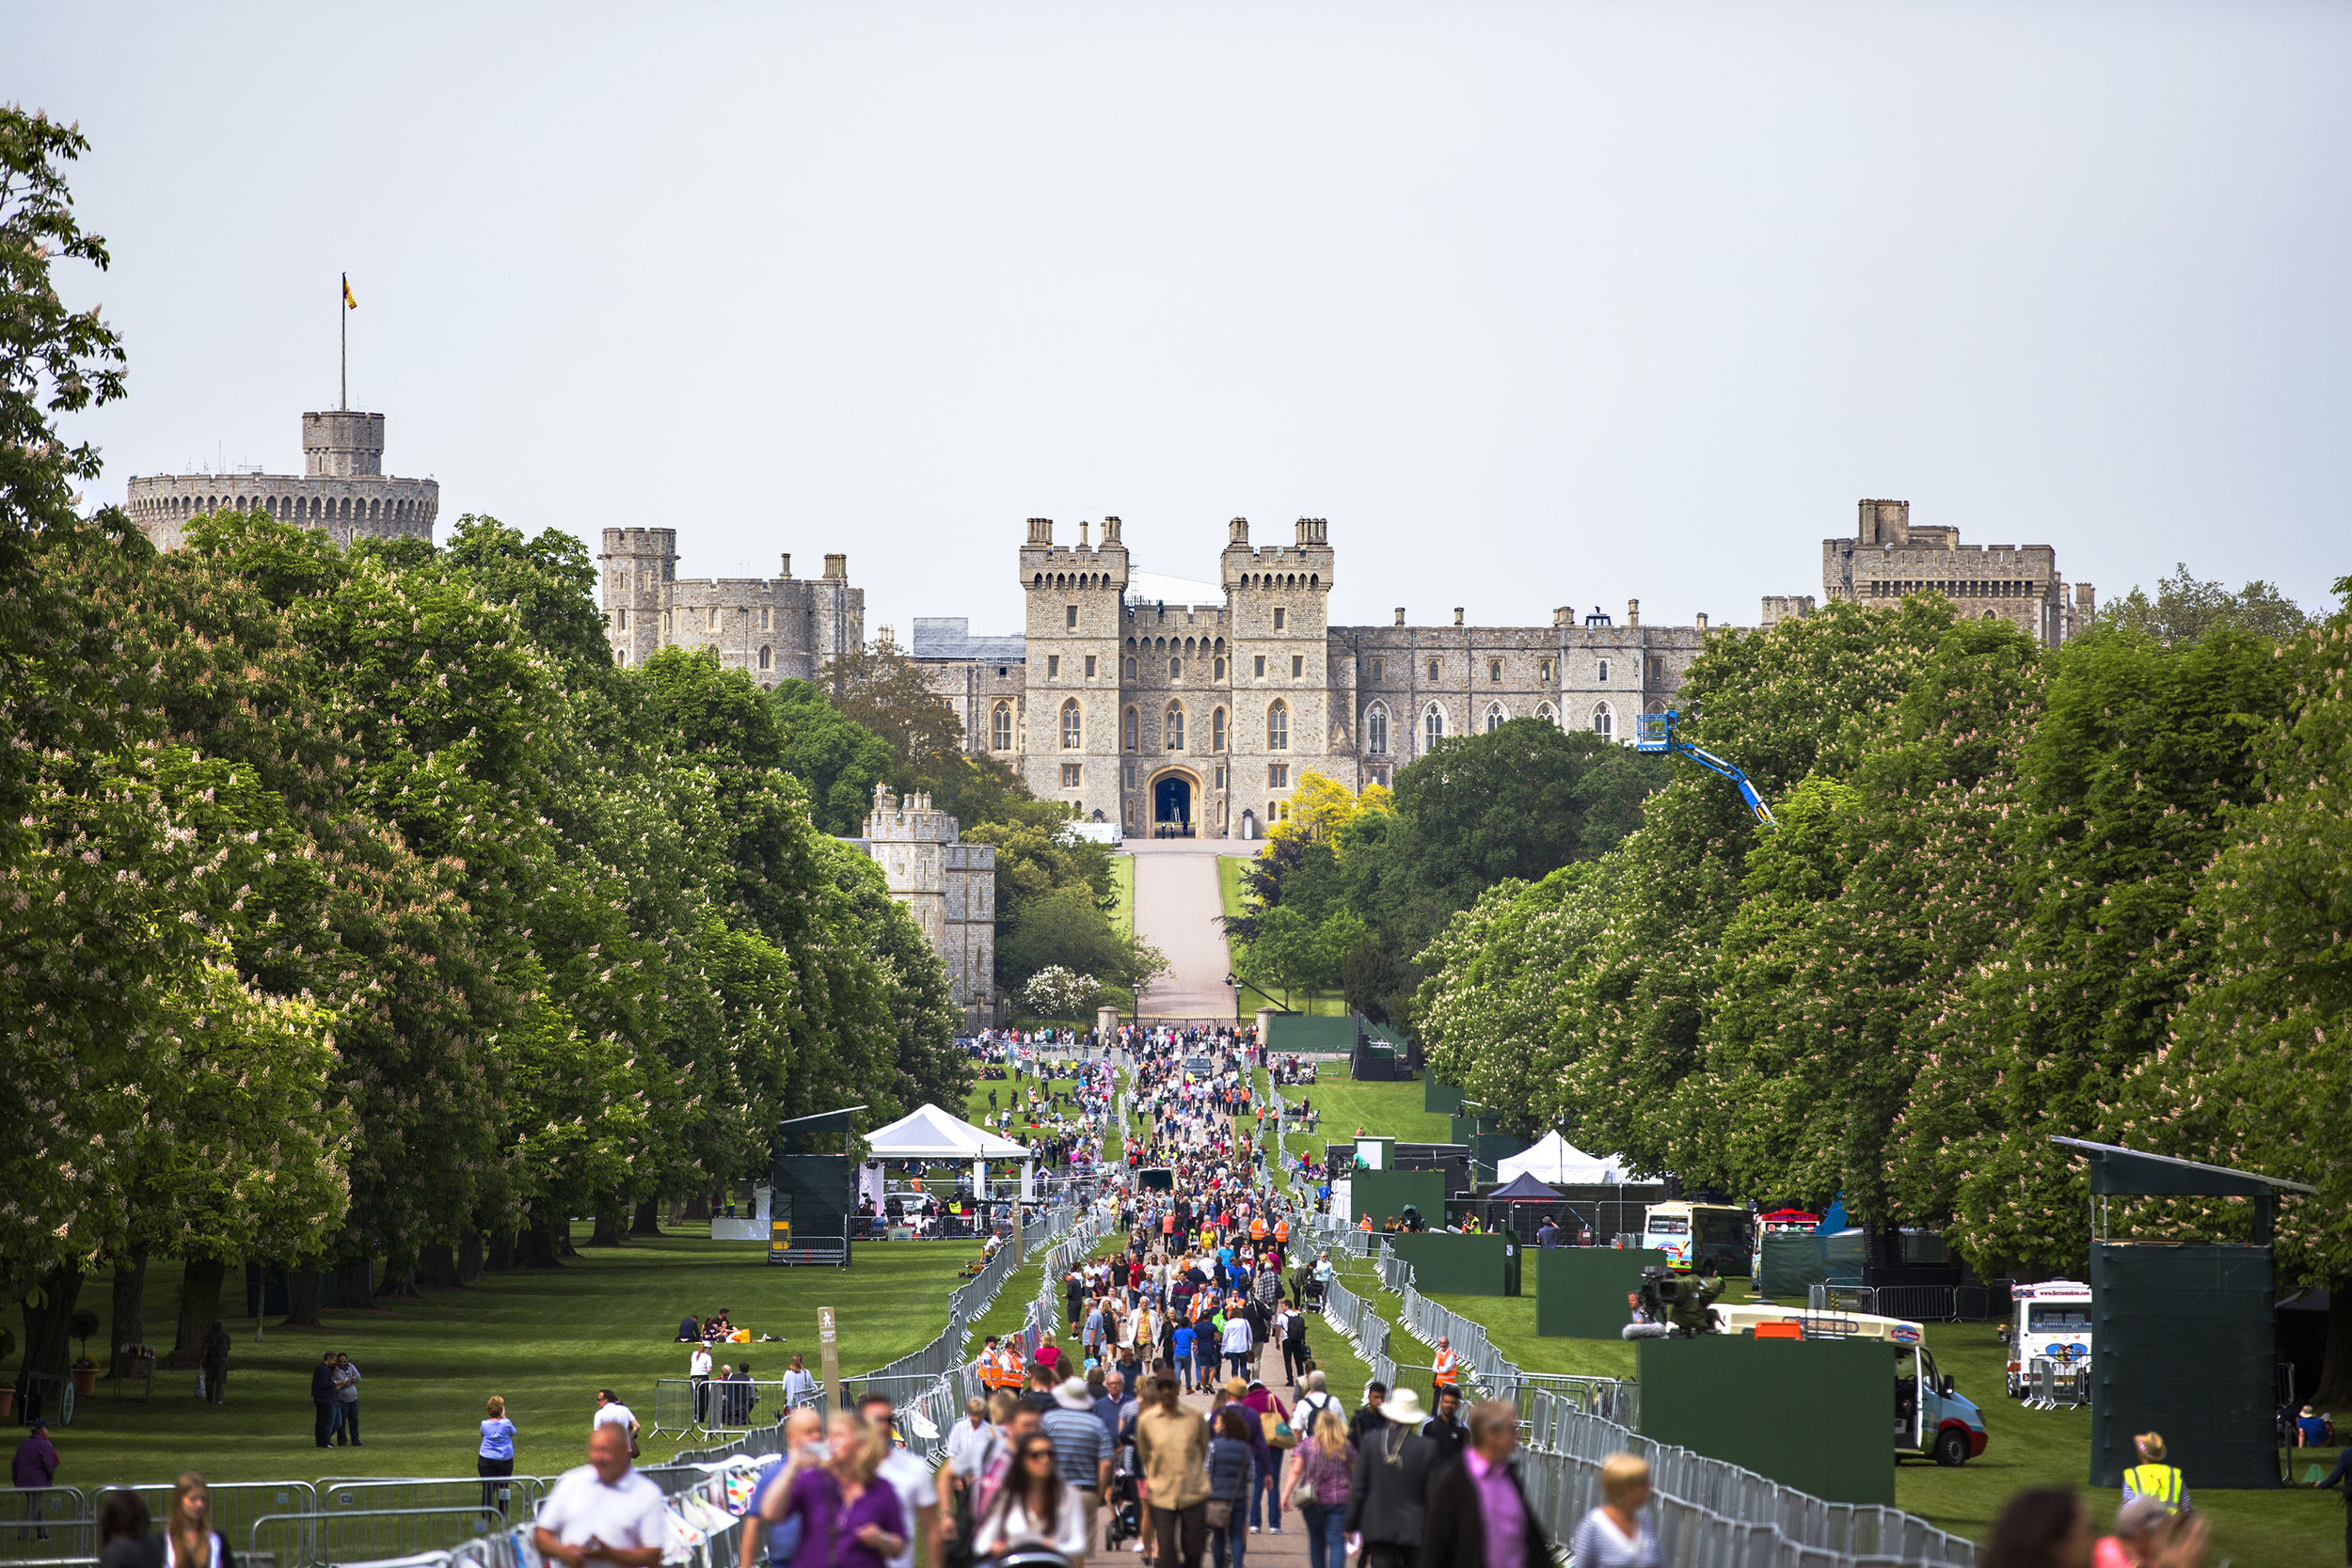 For nearly a thousand years Windsor has been home to the Kings and Queens of England. Much loved by the present Queen, Windsor Castle is known worldwide for the Royal splendor and fairy tale like scenes that are so British.